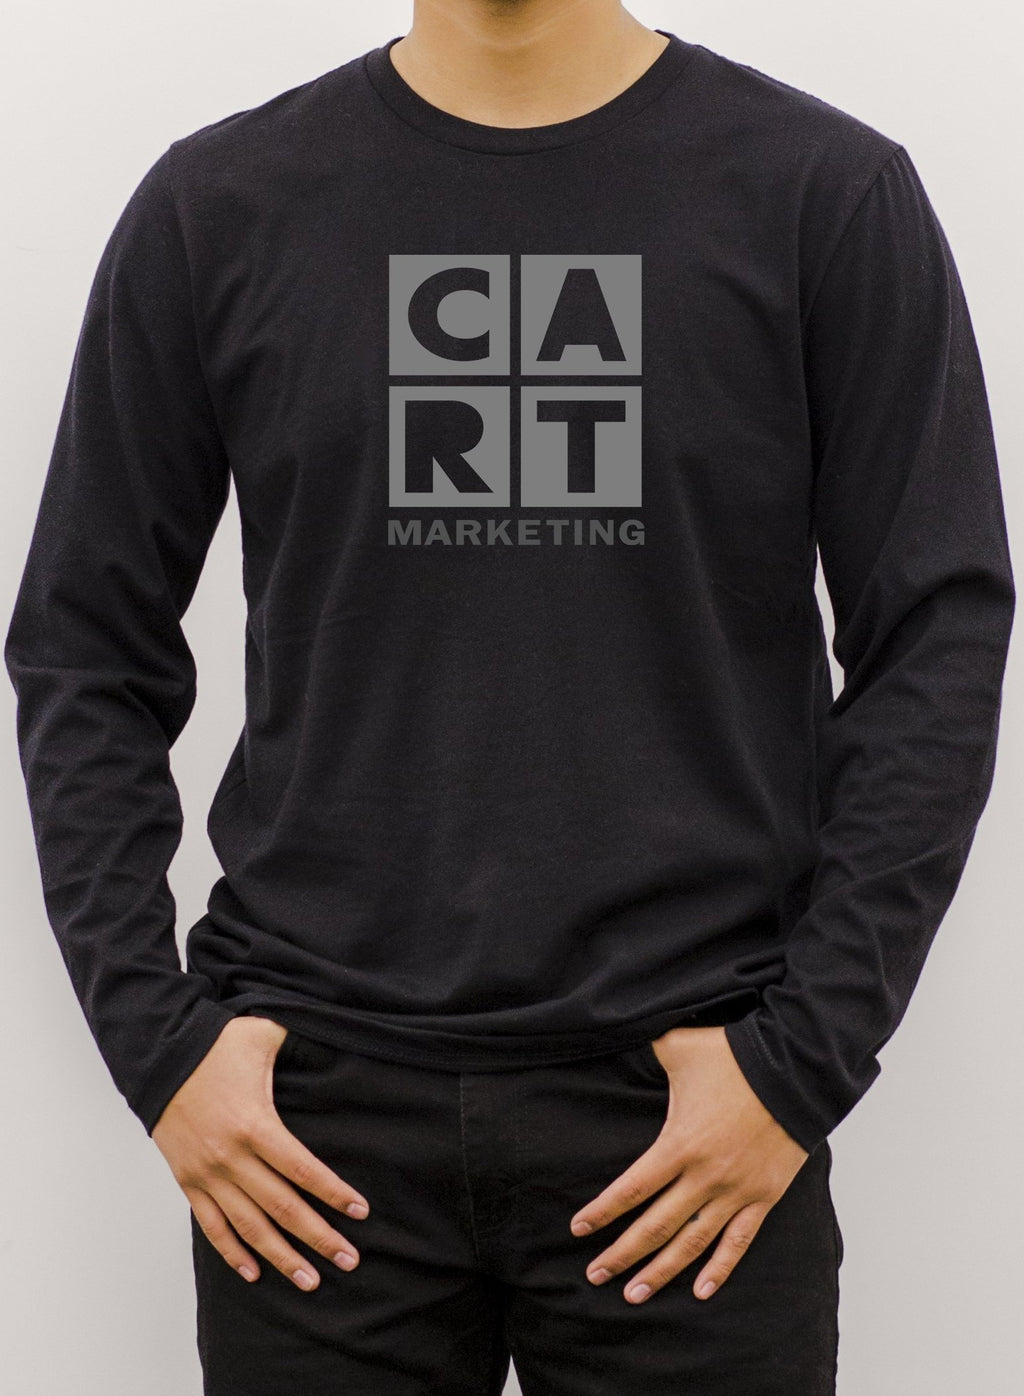 NEW Long Sleeve T-Shirt - Marketing